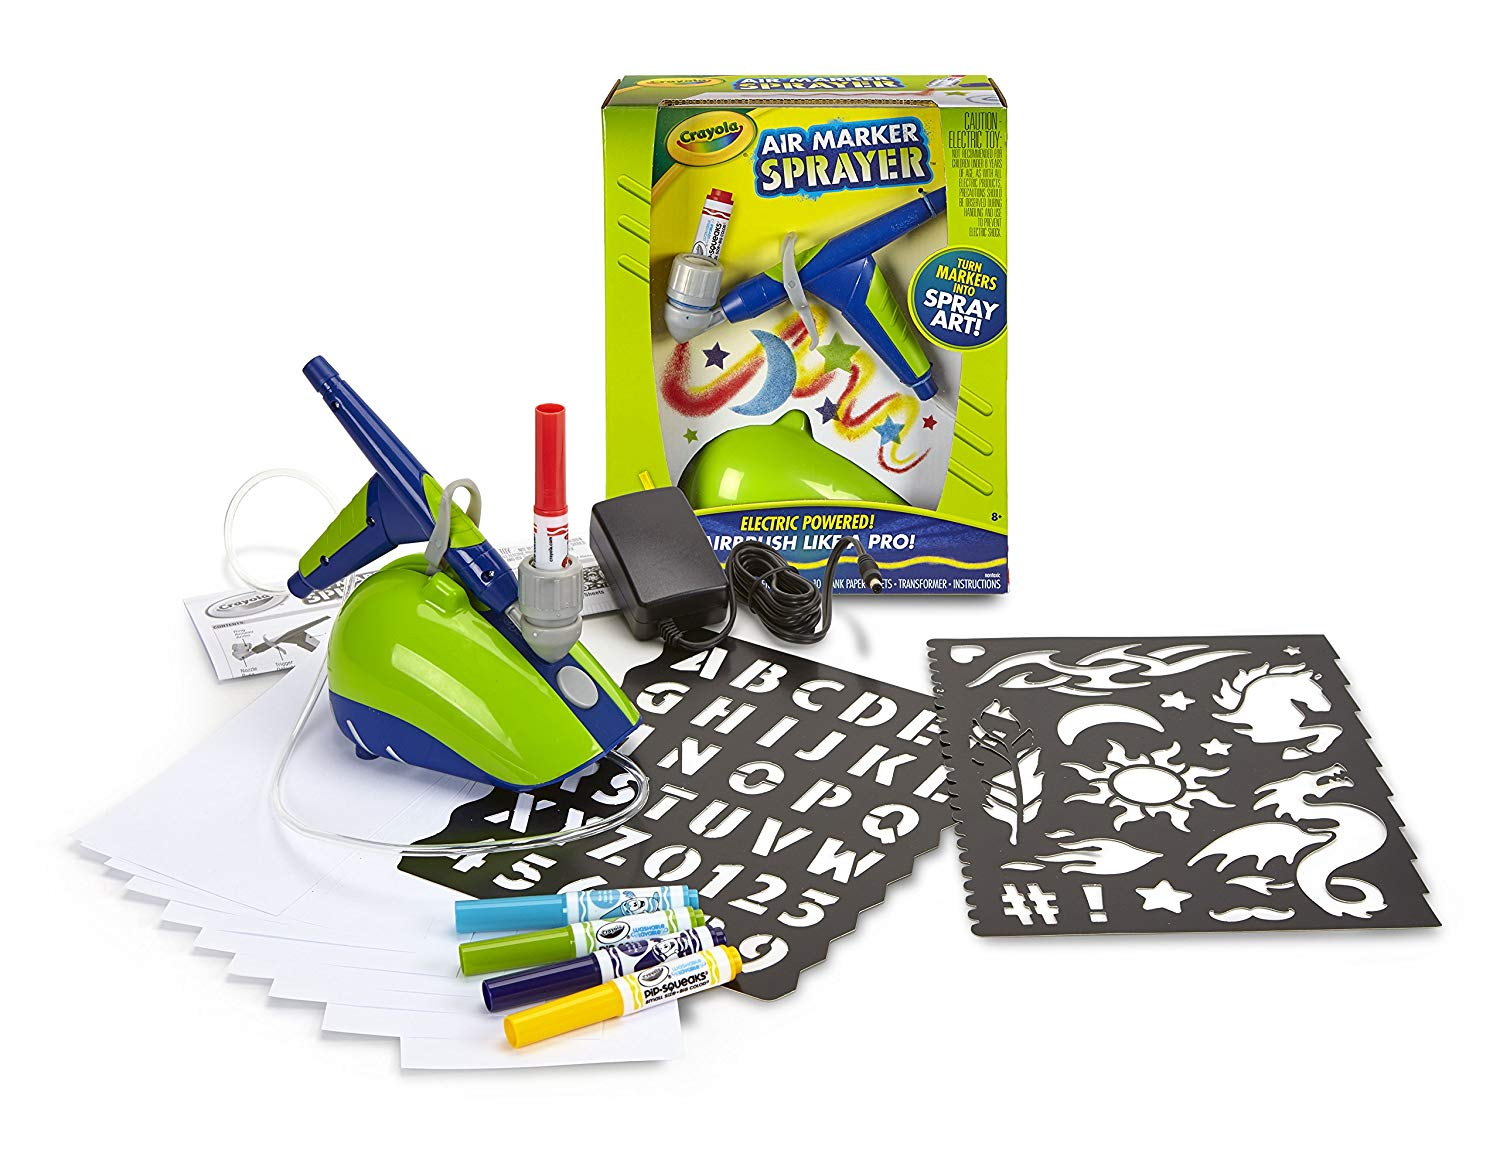 Cool kids' gifts under $15: Crayola marker airbrush spray kit